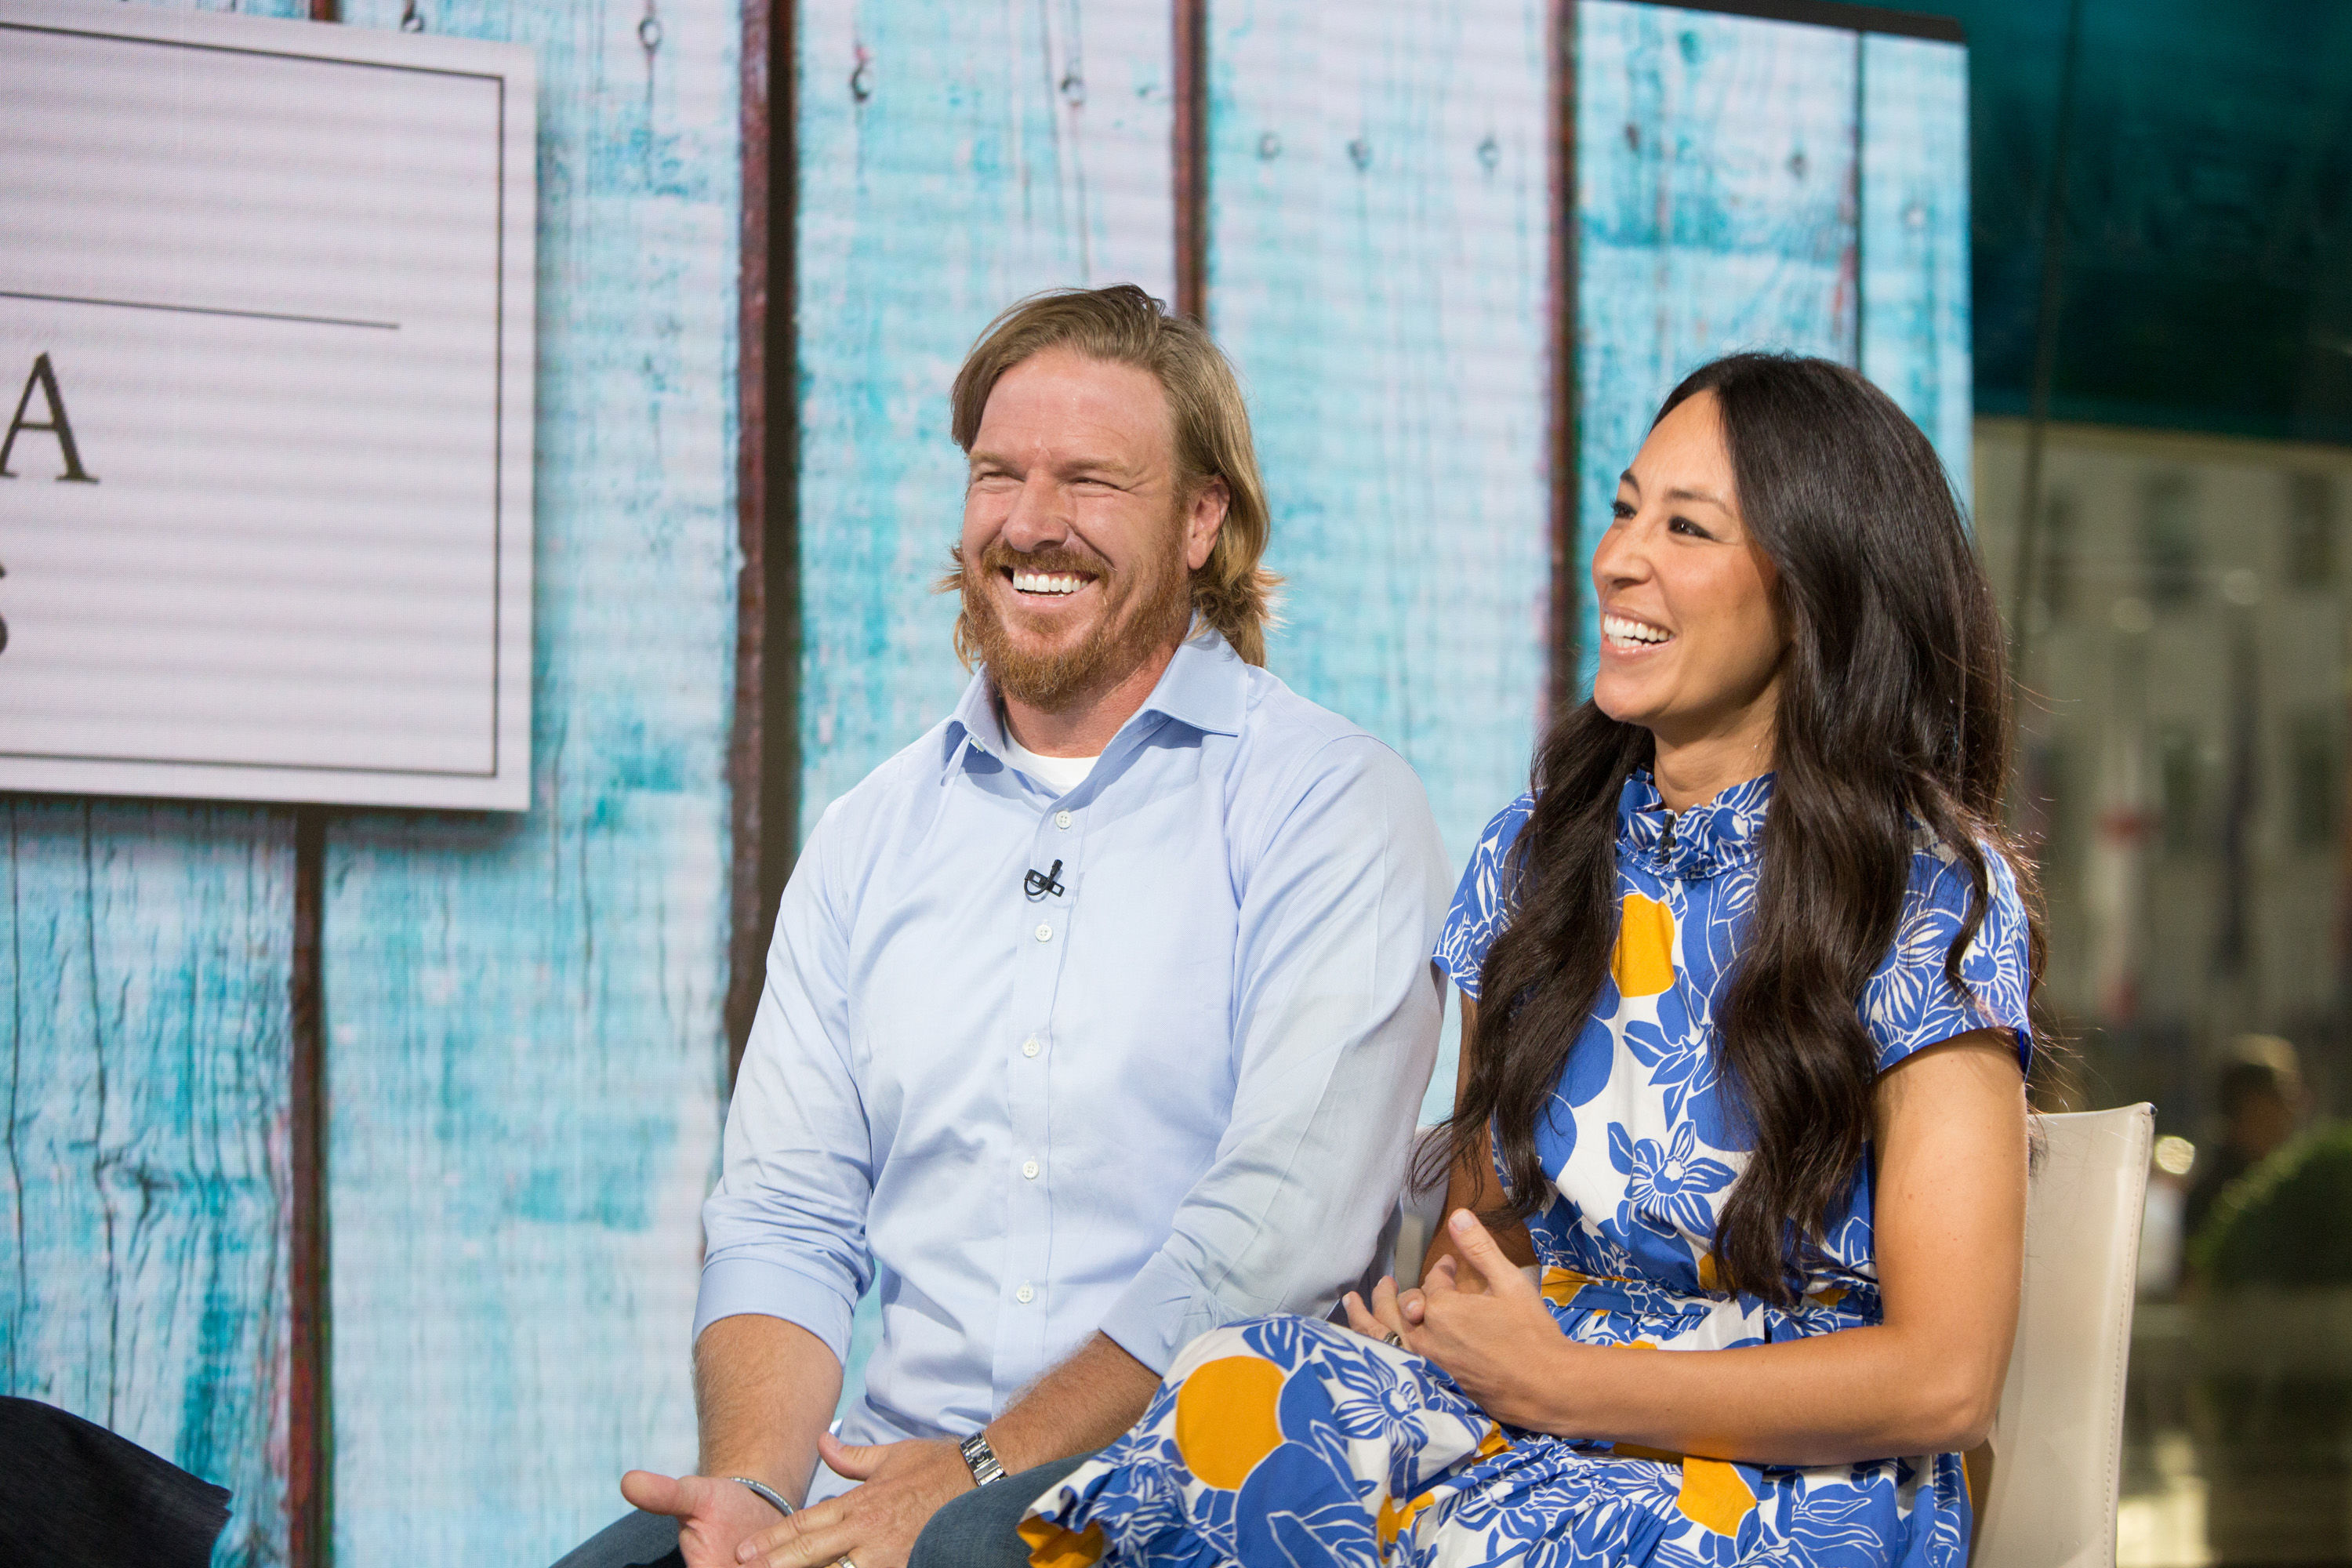 Have Chip and Joanna Gaines Totally Changed the Way We Buy Homes?